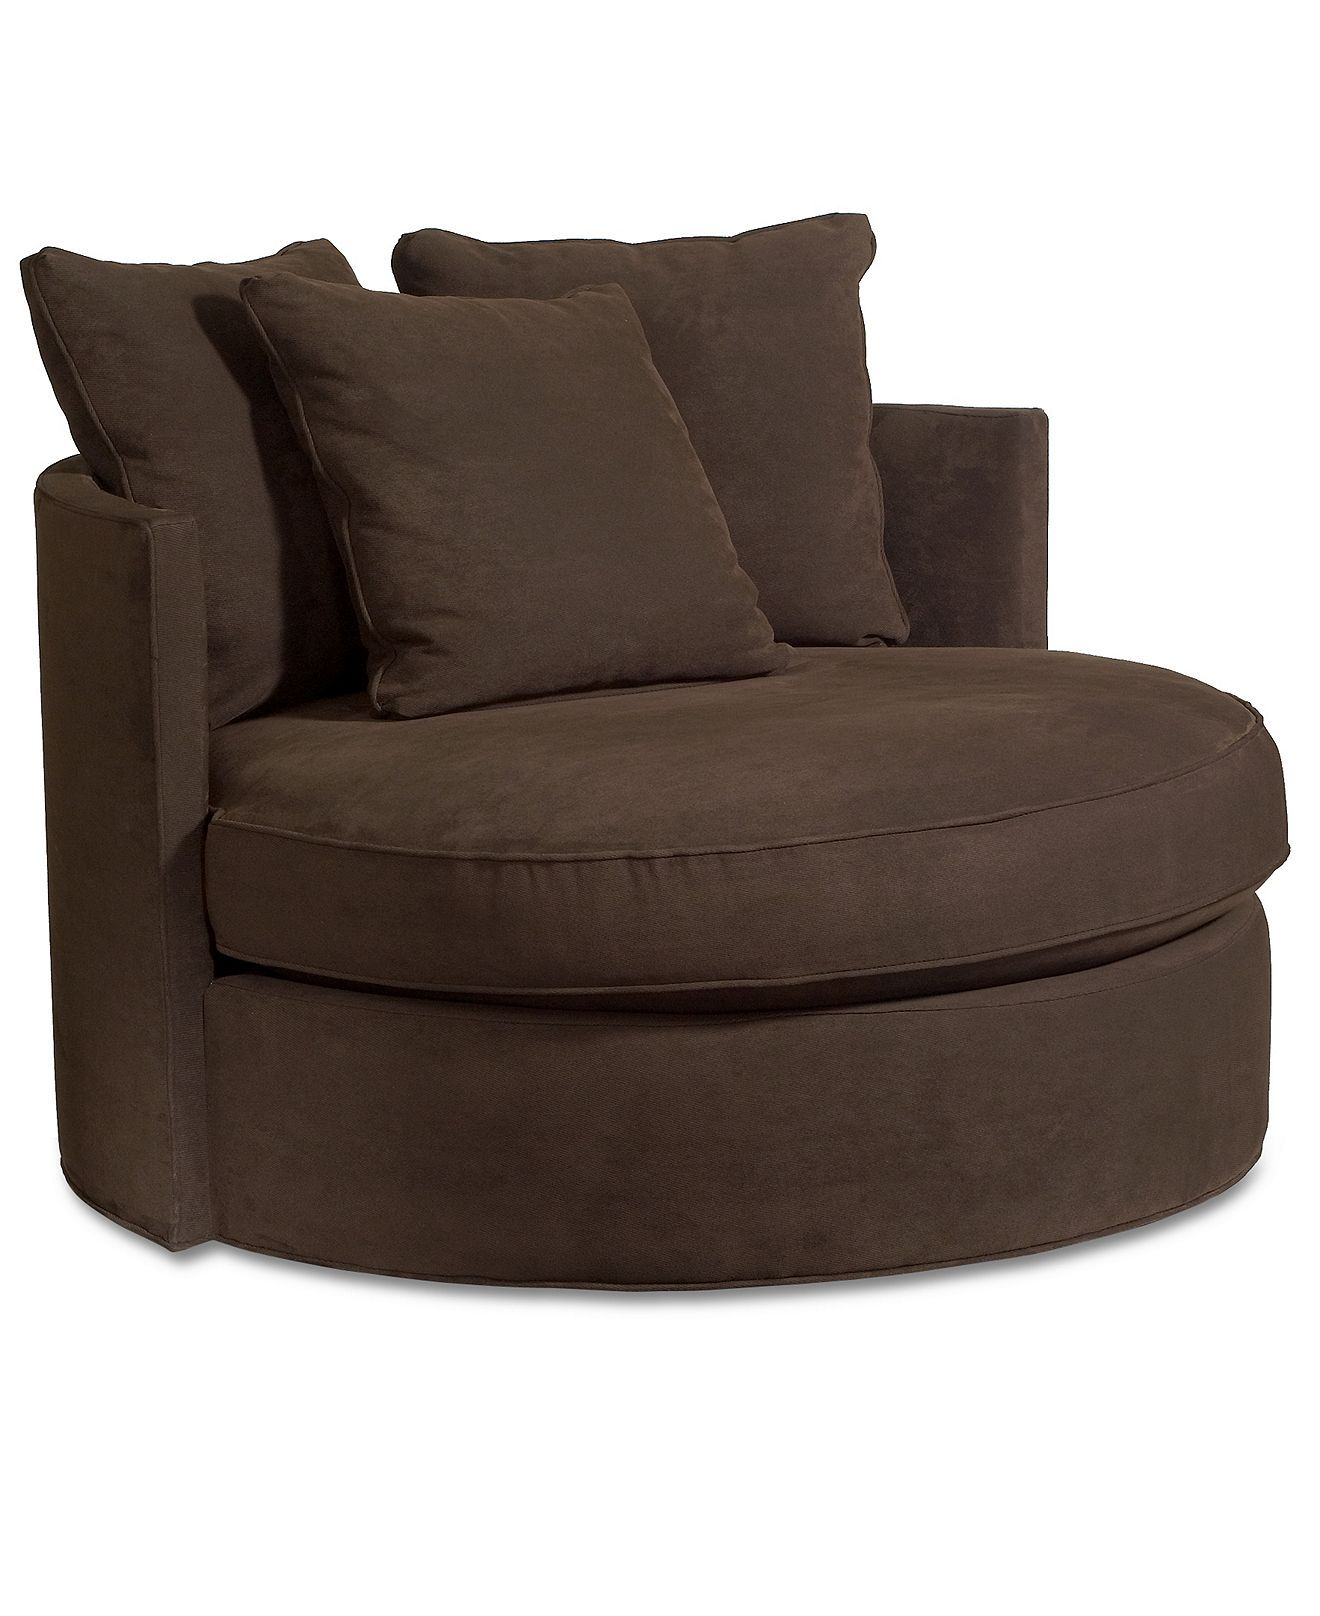 Doss Godiva Fabric Microfiber Round Swivel Living Room Chair Cuddle Chair Living Room Chairs